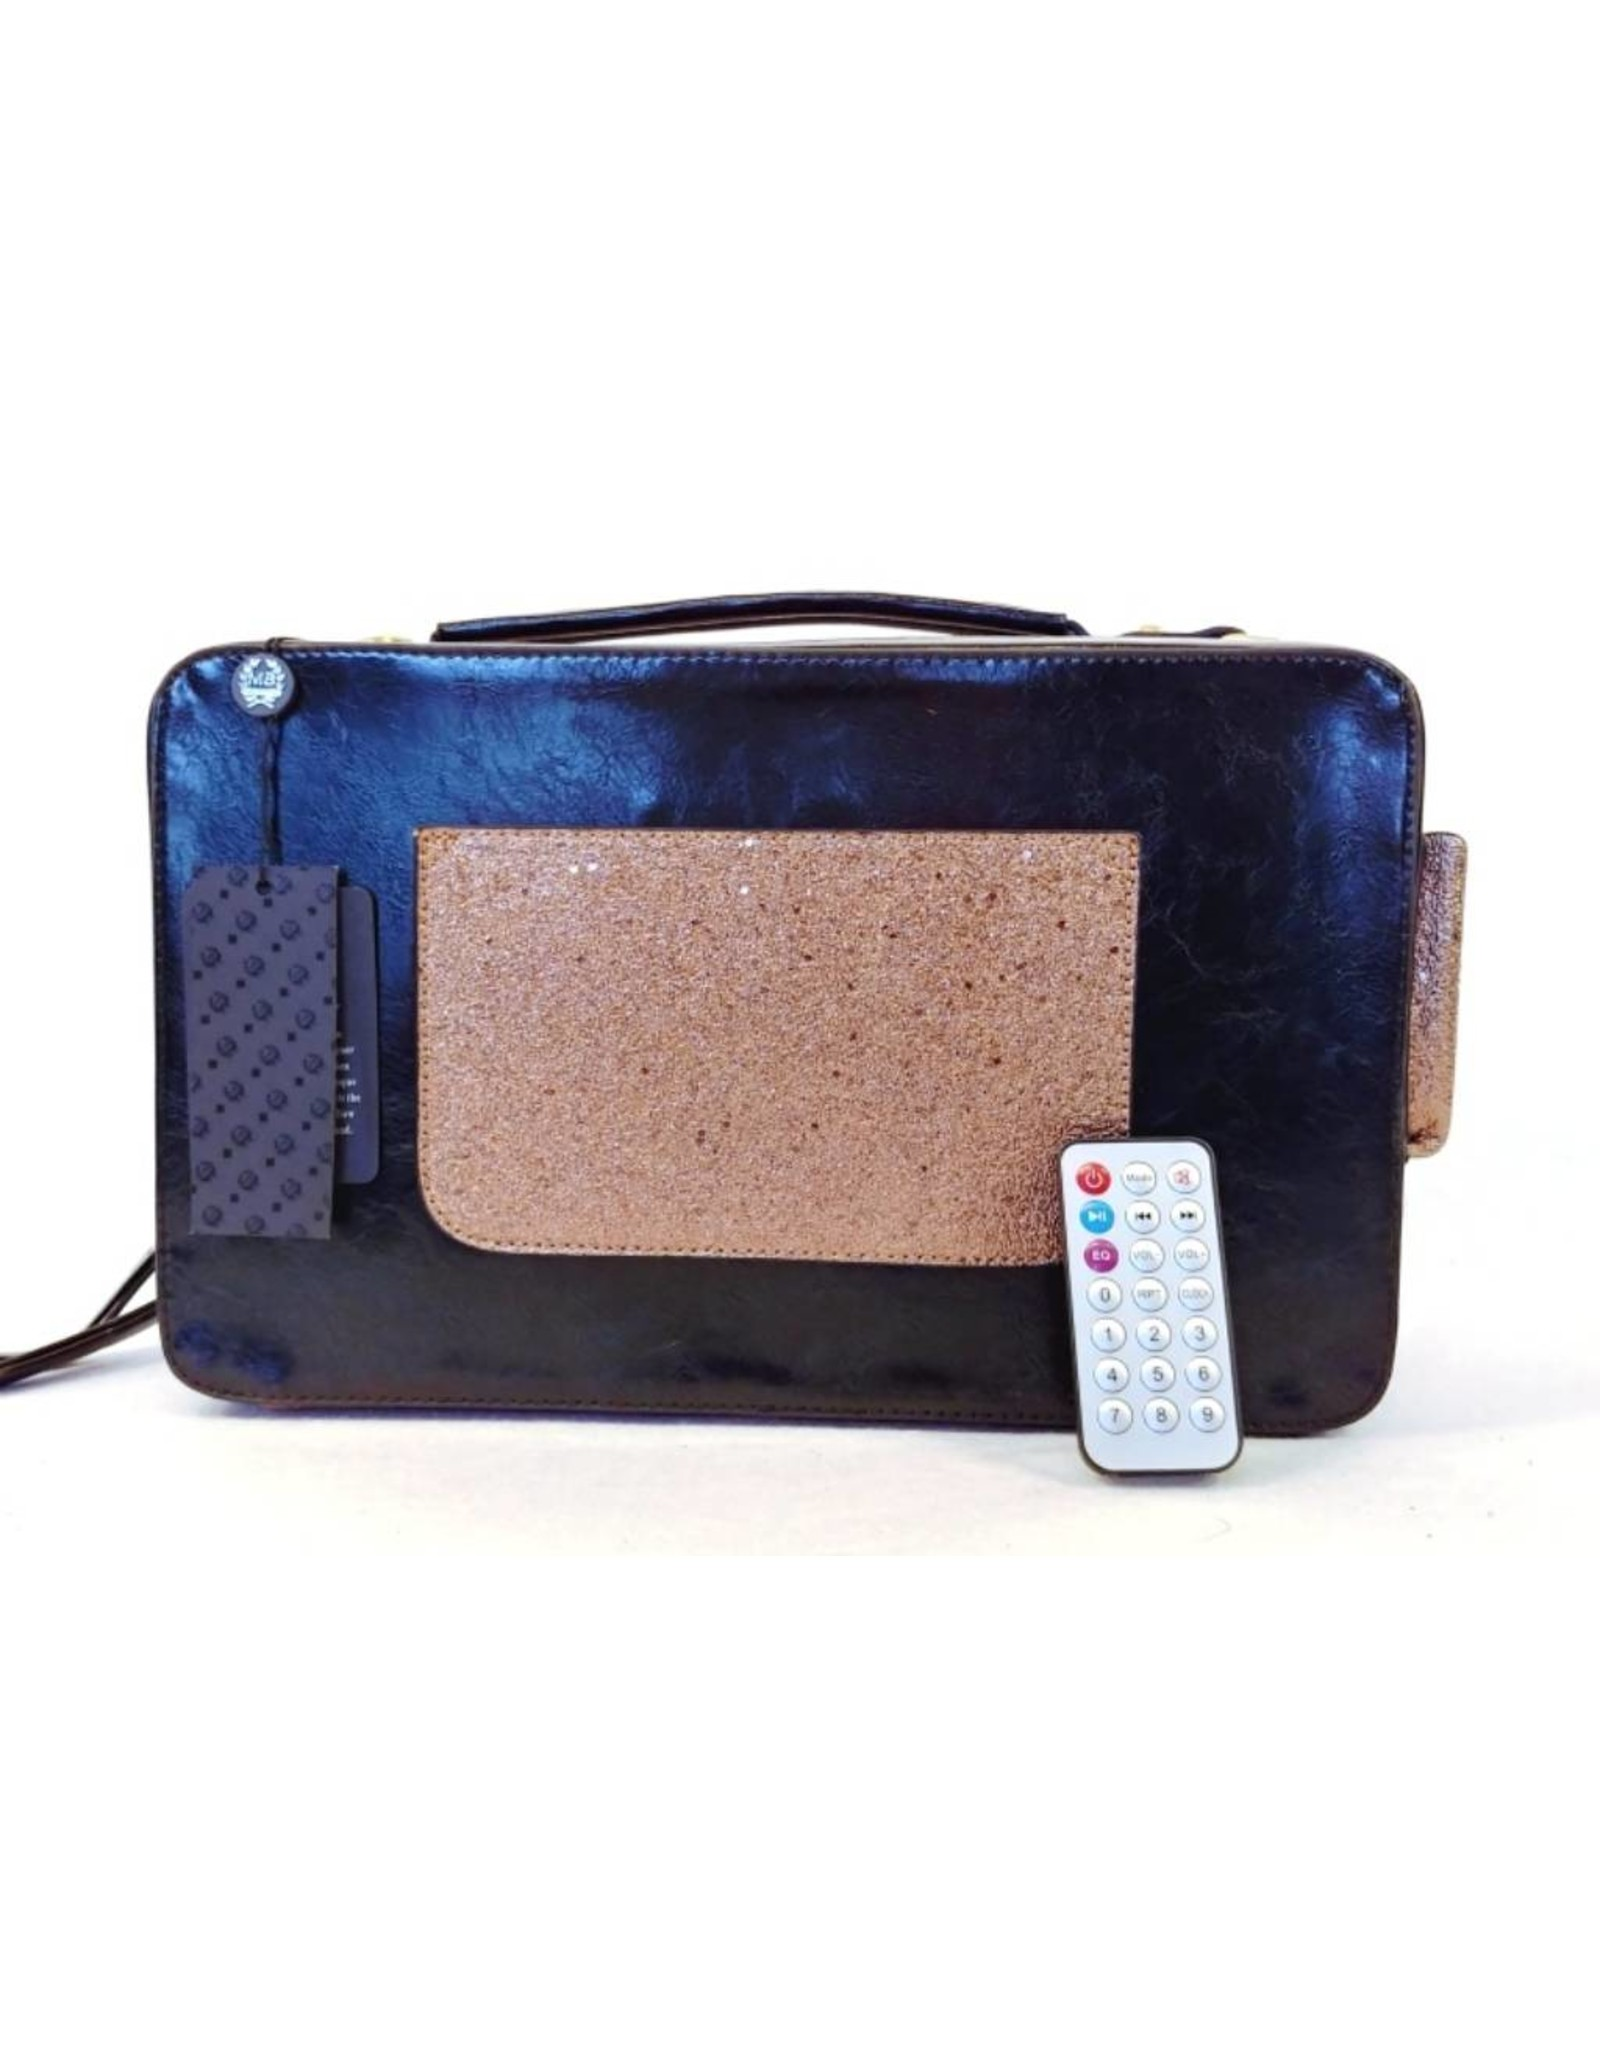 Magic Bags Fantasy tassen - Magic Bags Retro tas met werkende Radio zwart